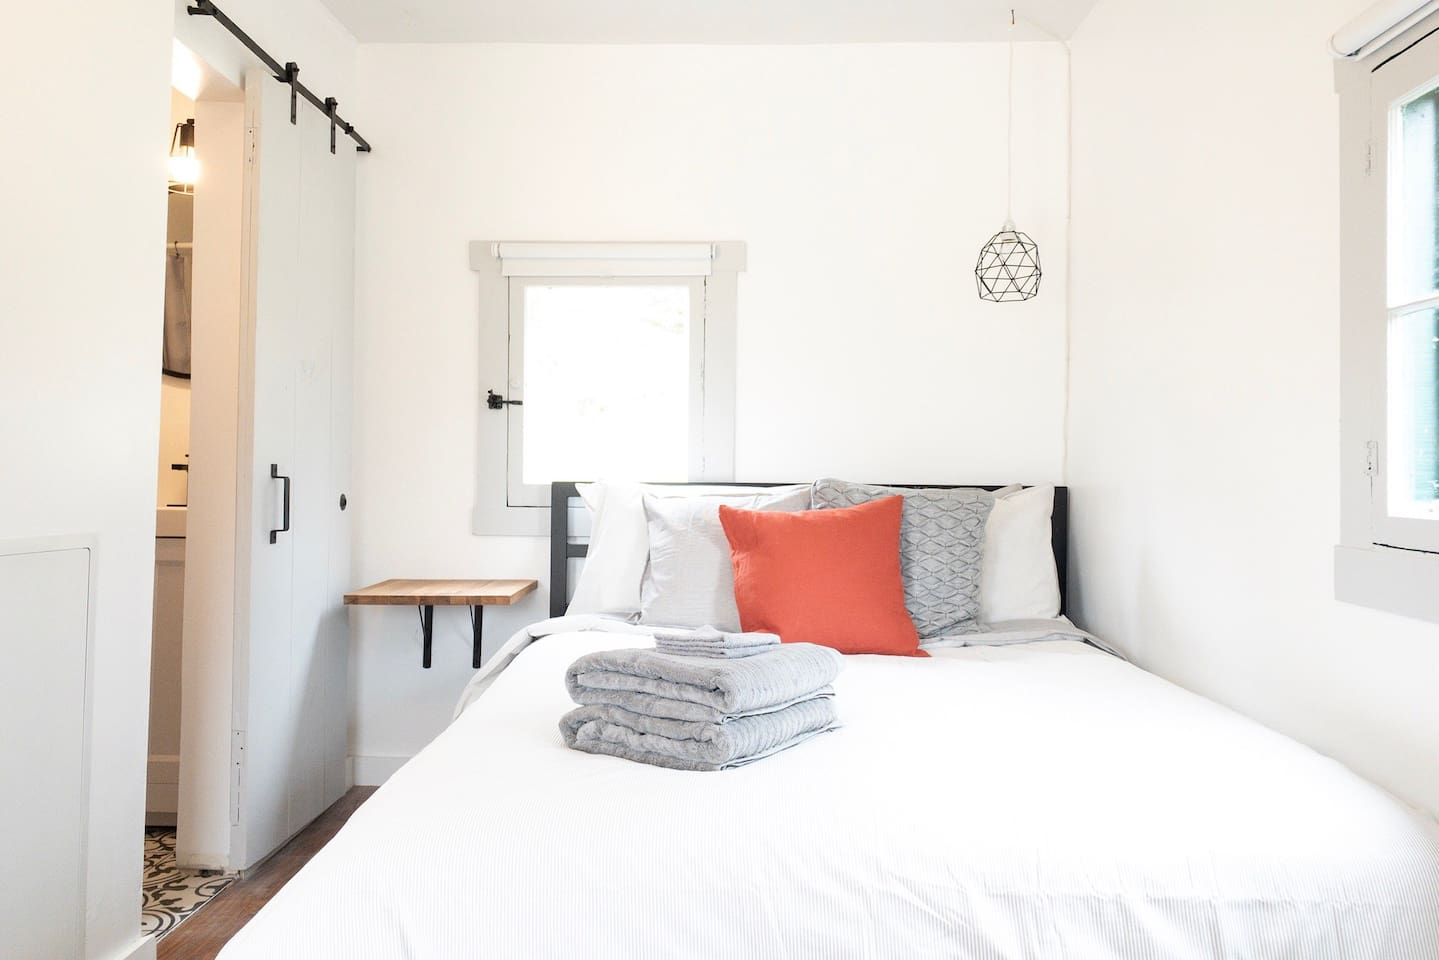 The small studio space boasts a comfy queen sized bed to leave you feeling rested!